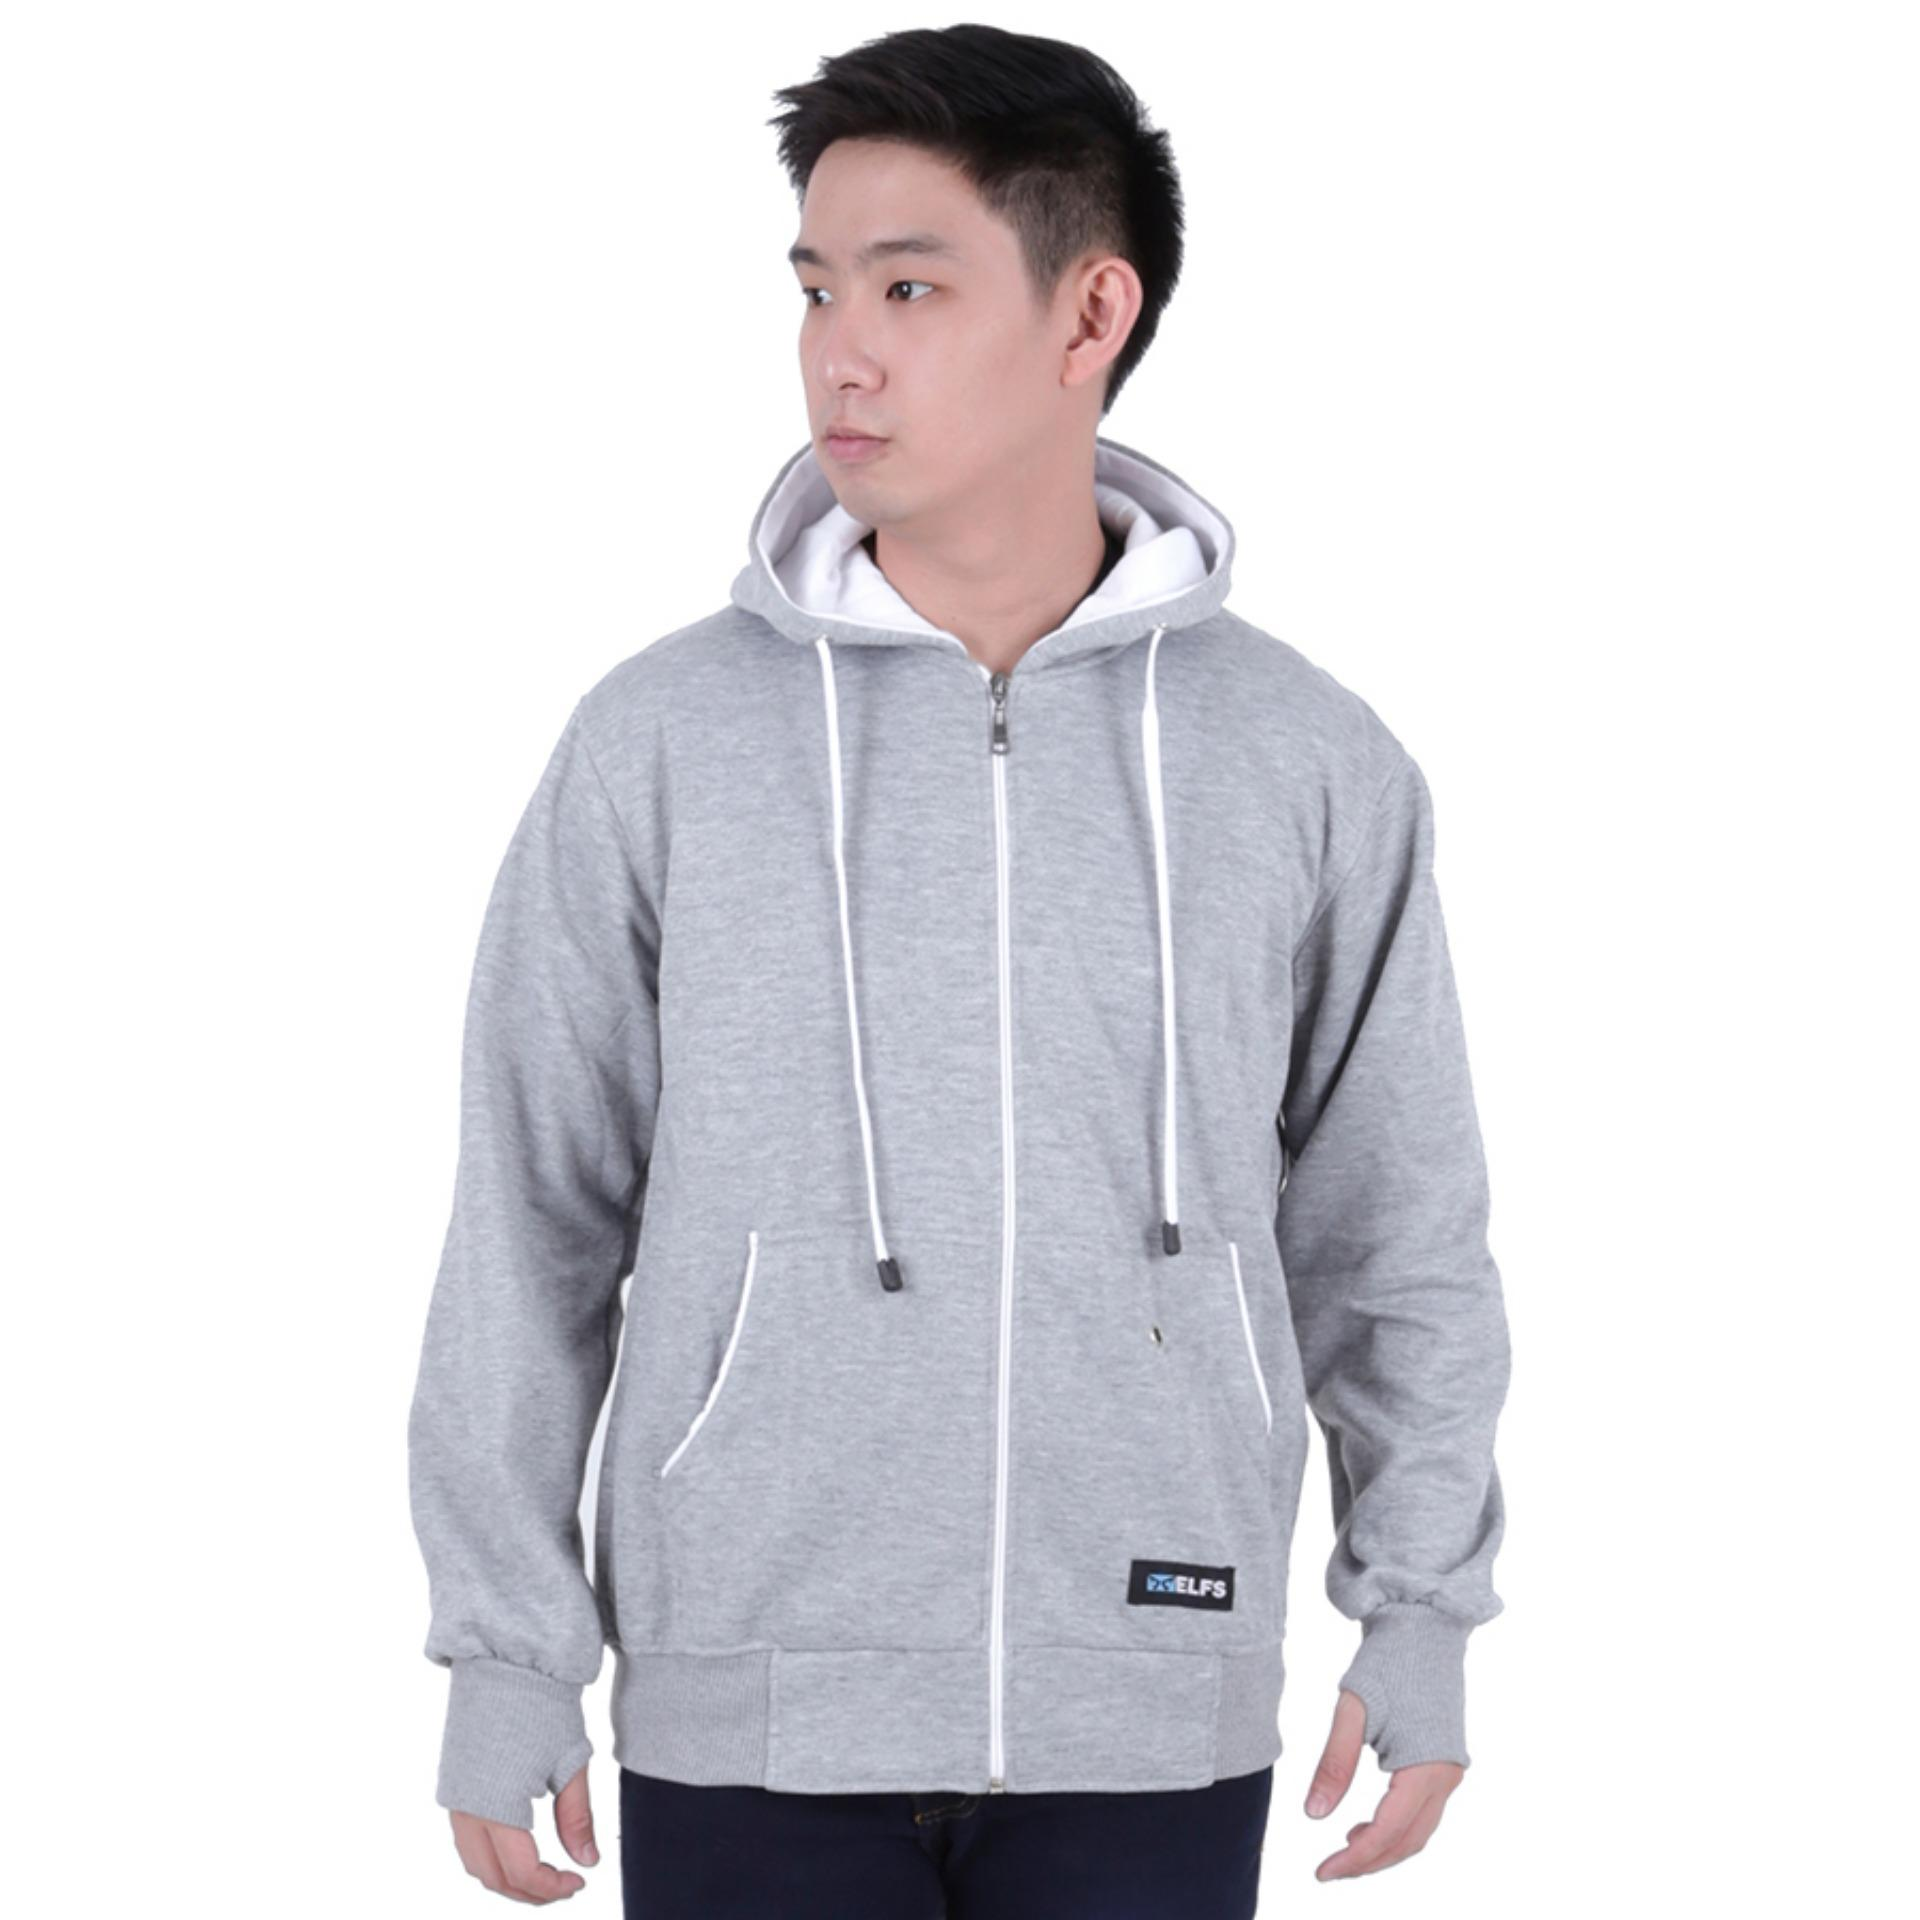 Elfs Shop - Jaket Sweater Hoodie List Pria Fleece 8eb8de9ba5